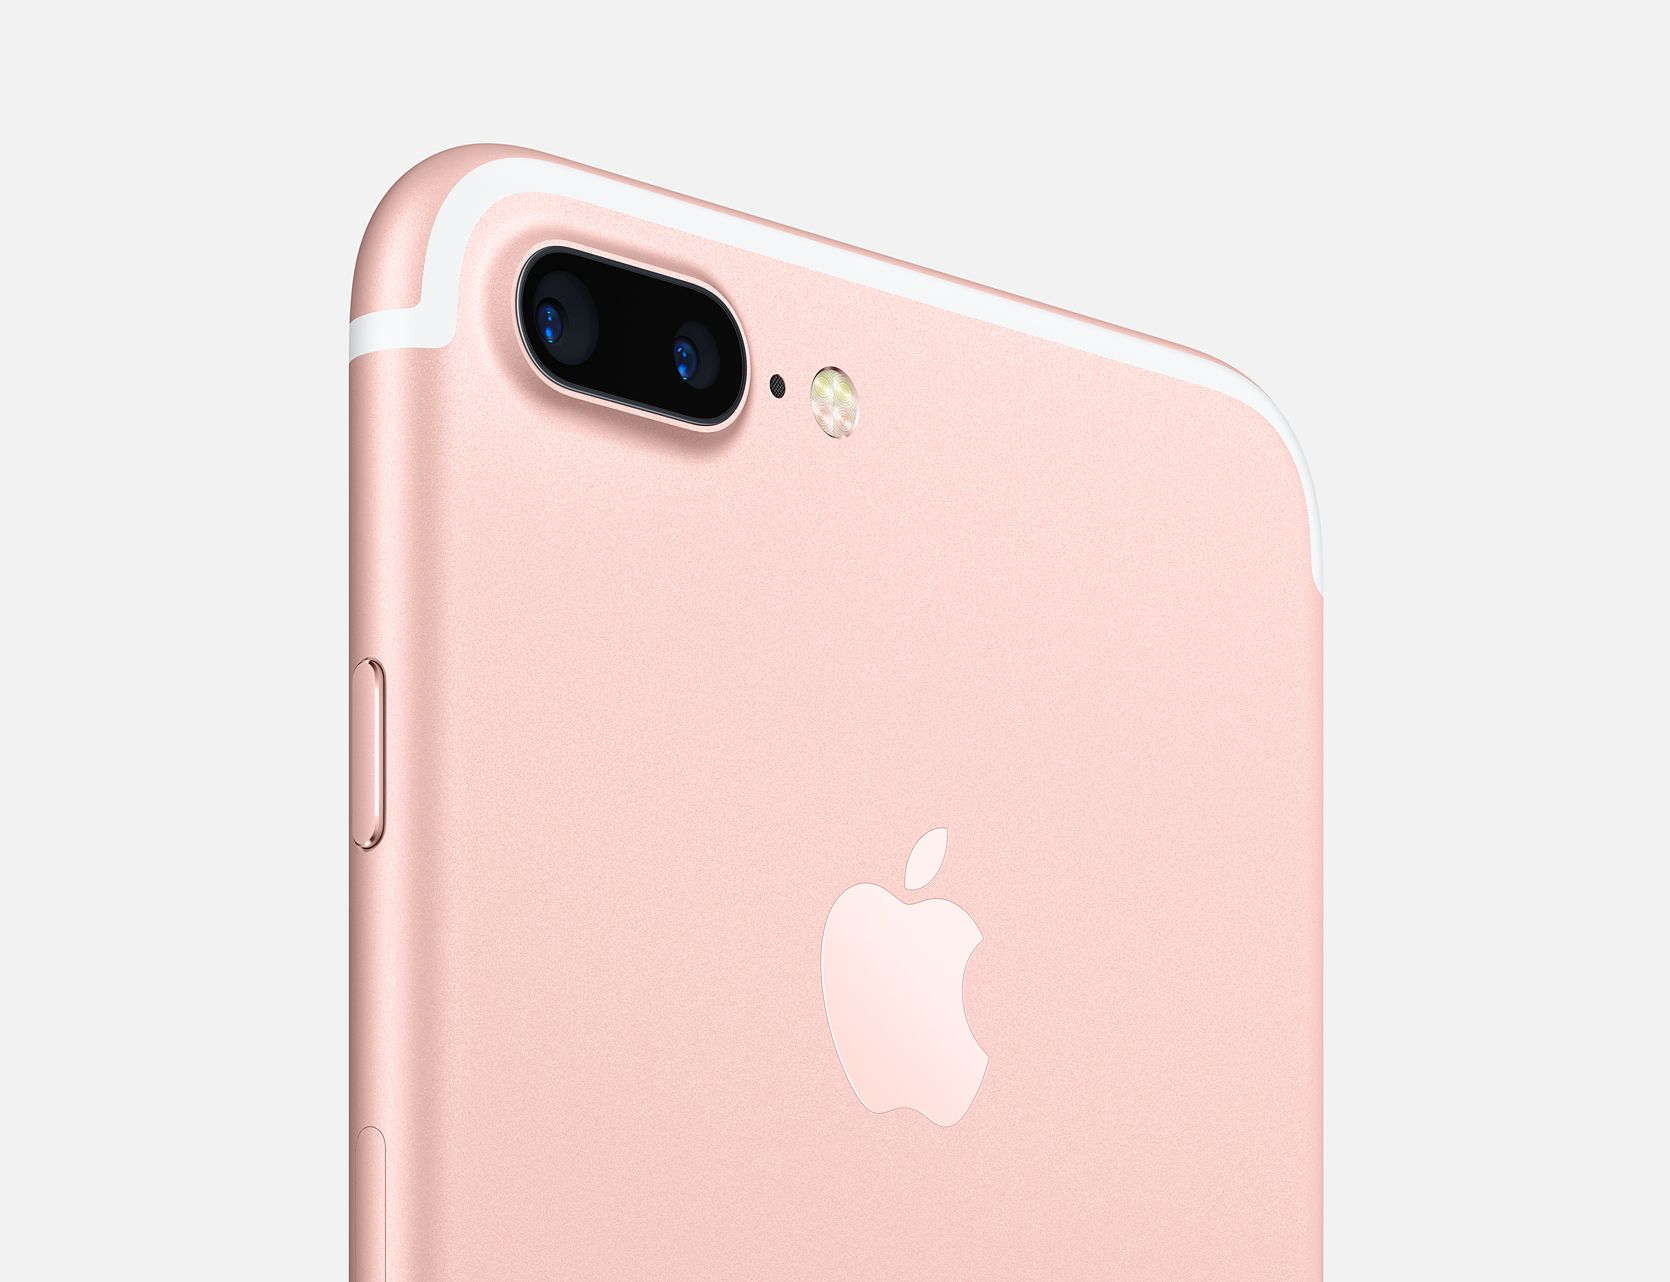 iphone7plus-rose-gold-128gb